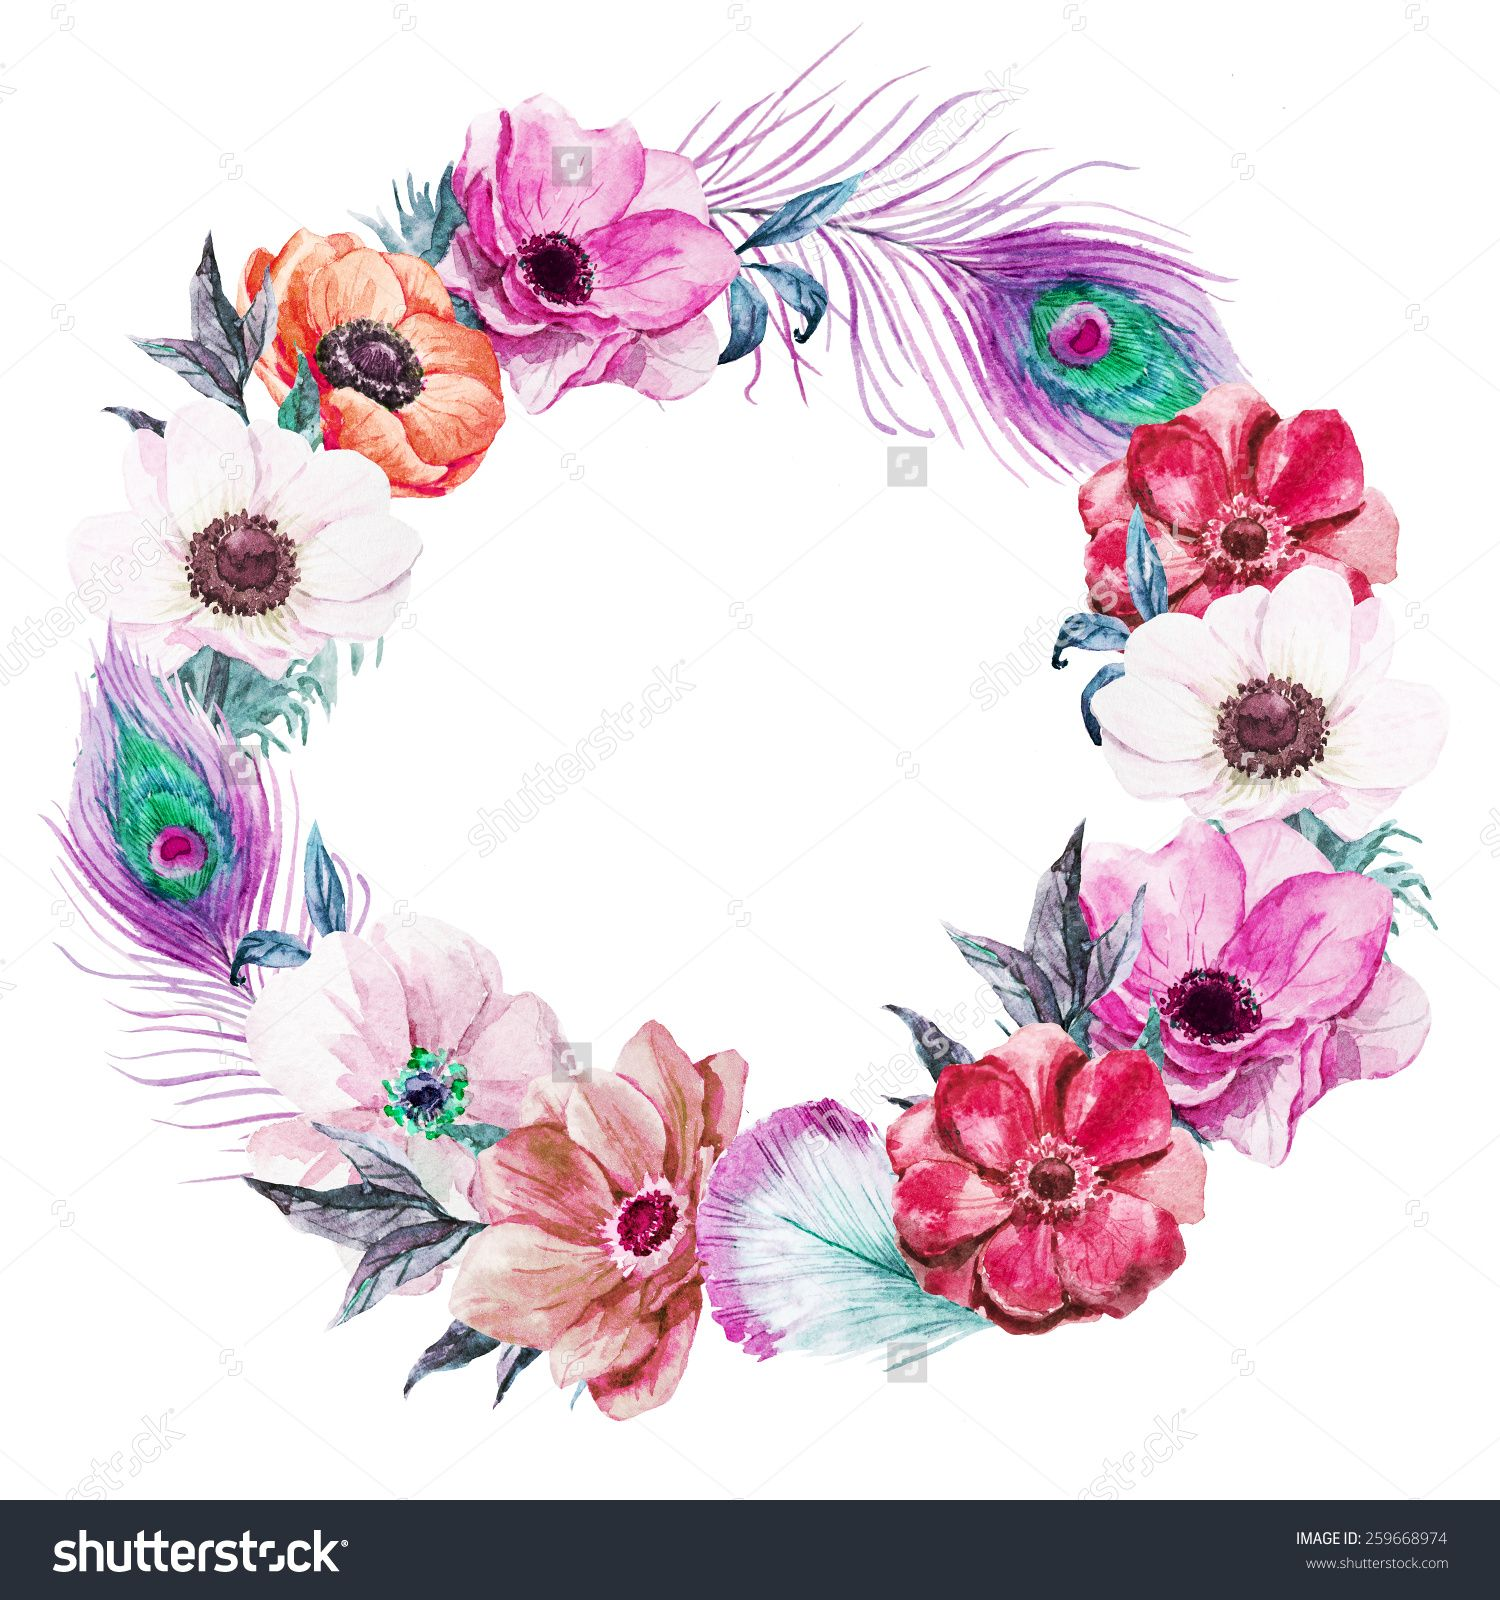 Wreath clipartfest printable images. Boho clipart feather